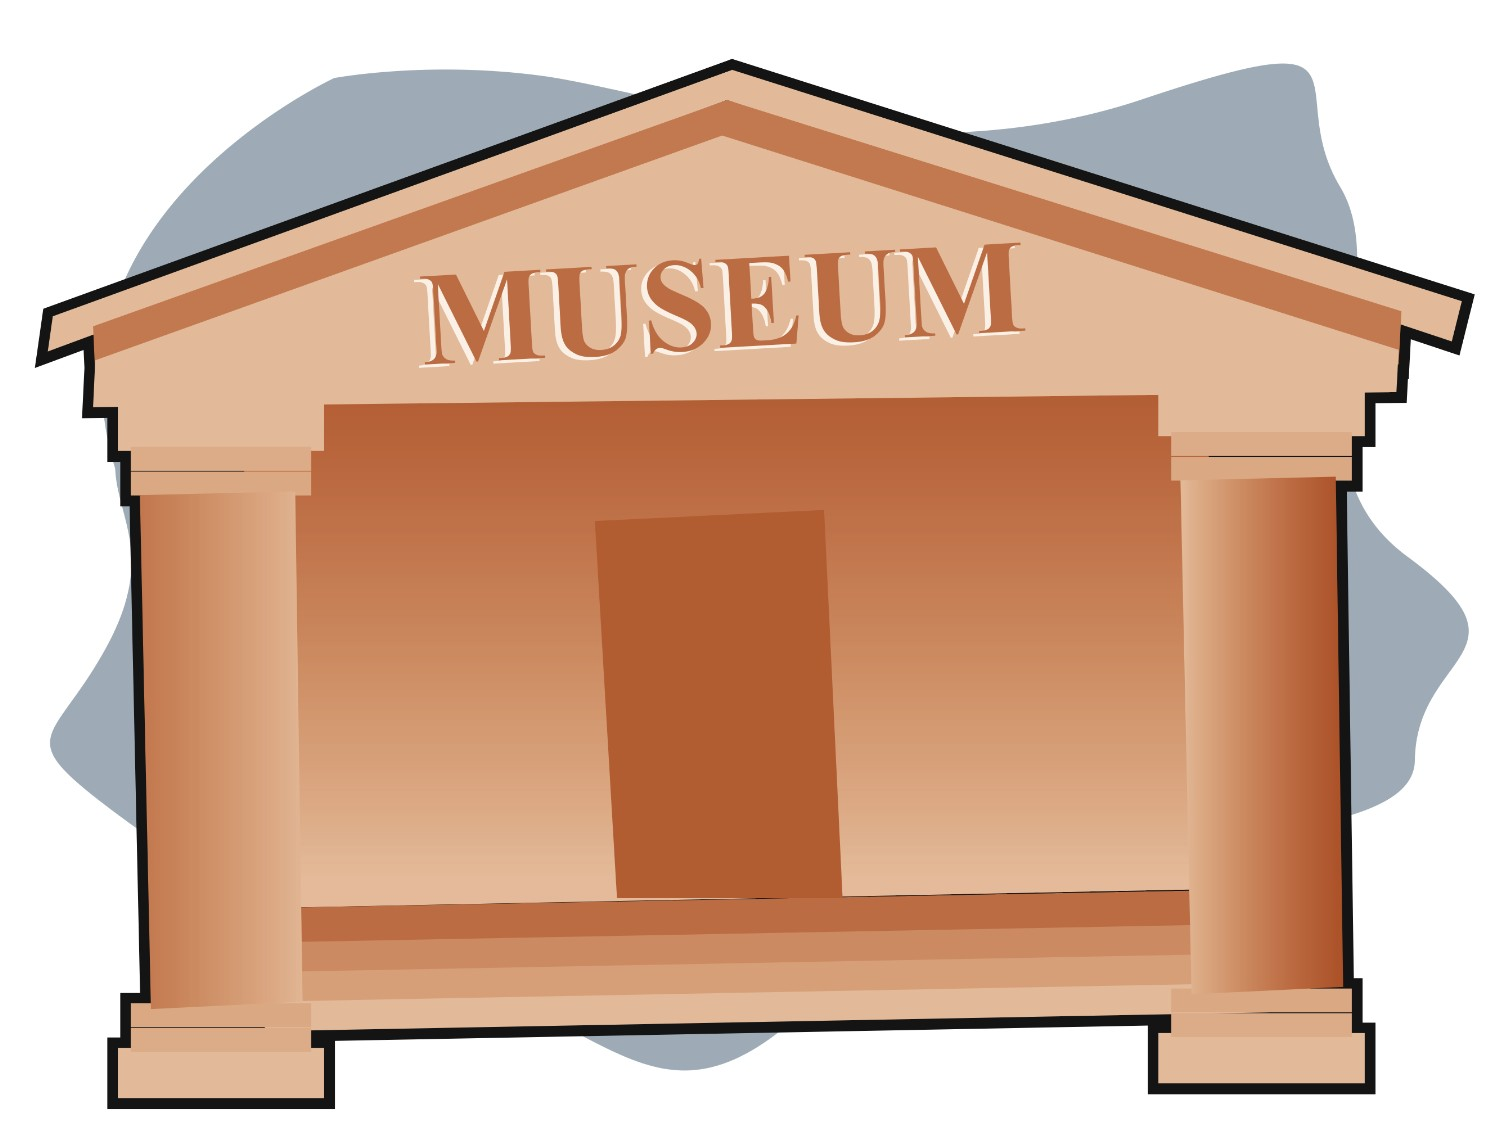 Museum clipart #11, Download drawings